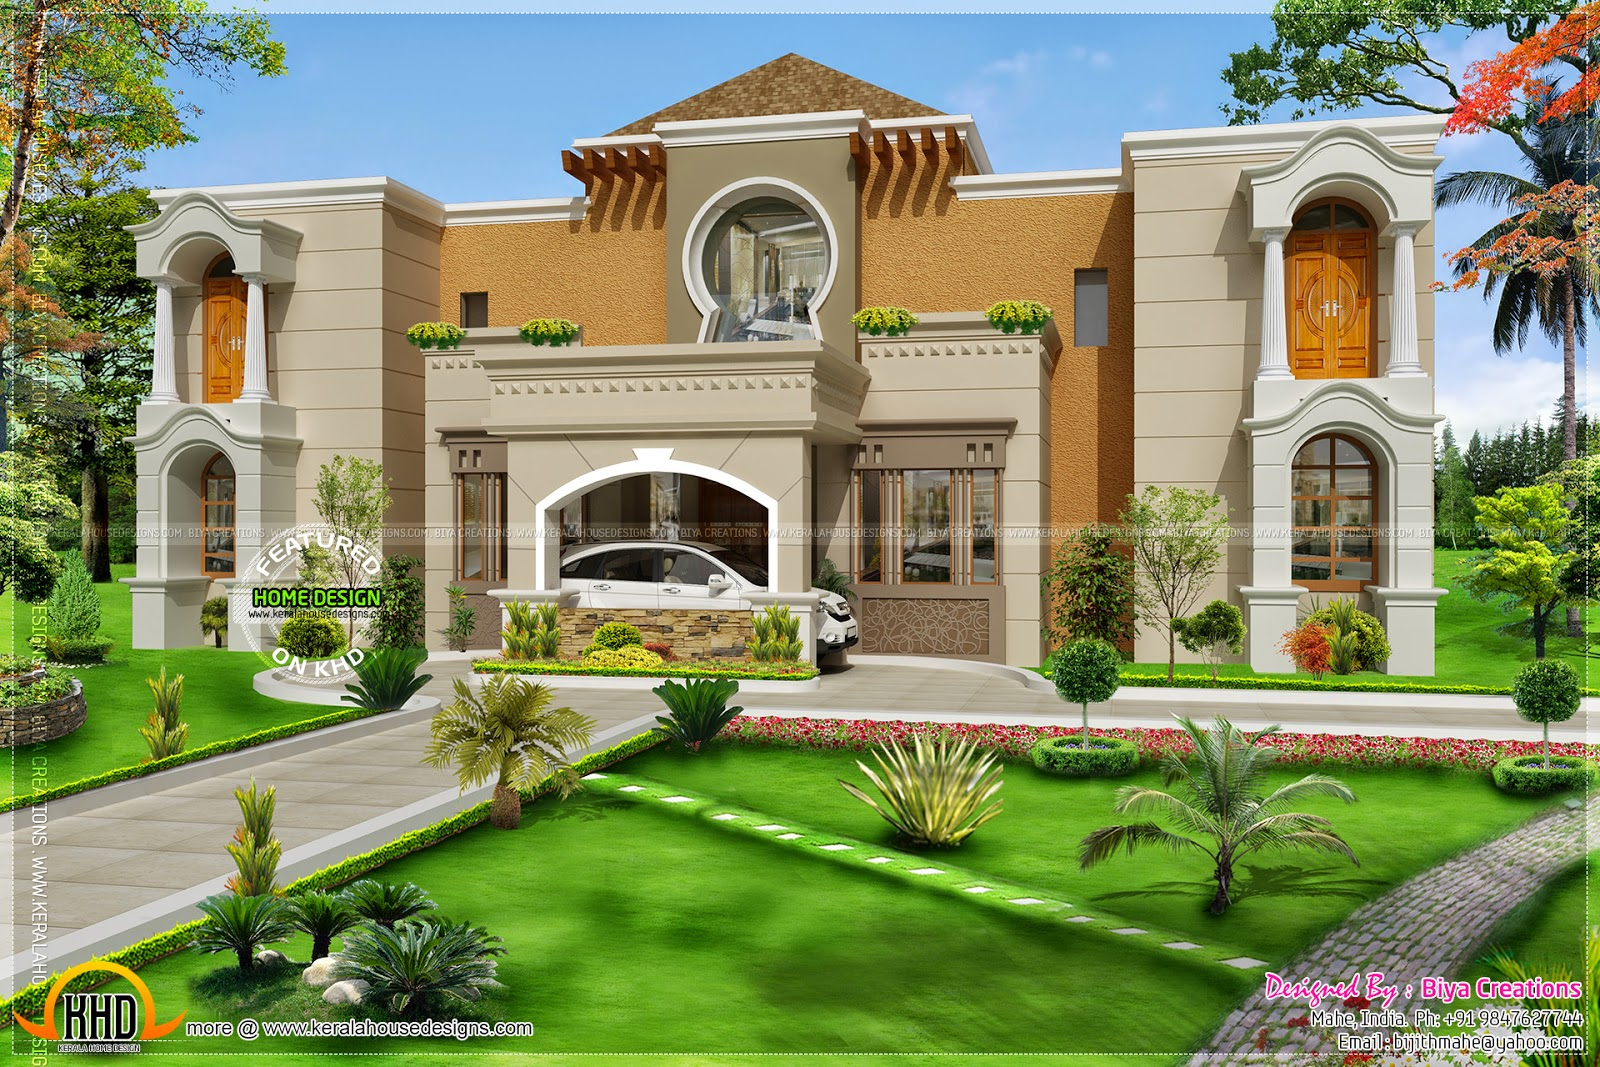 arab style house in andhra india - House Design Style